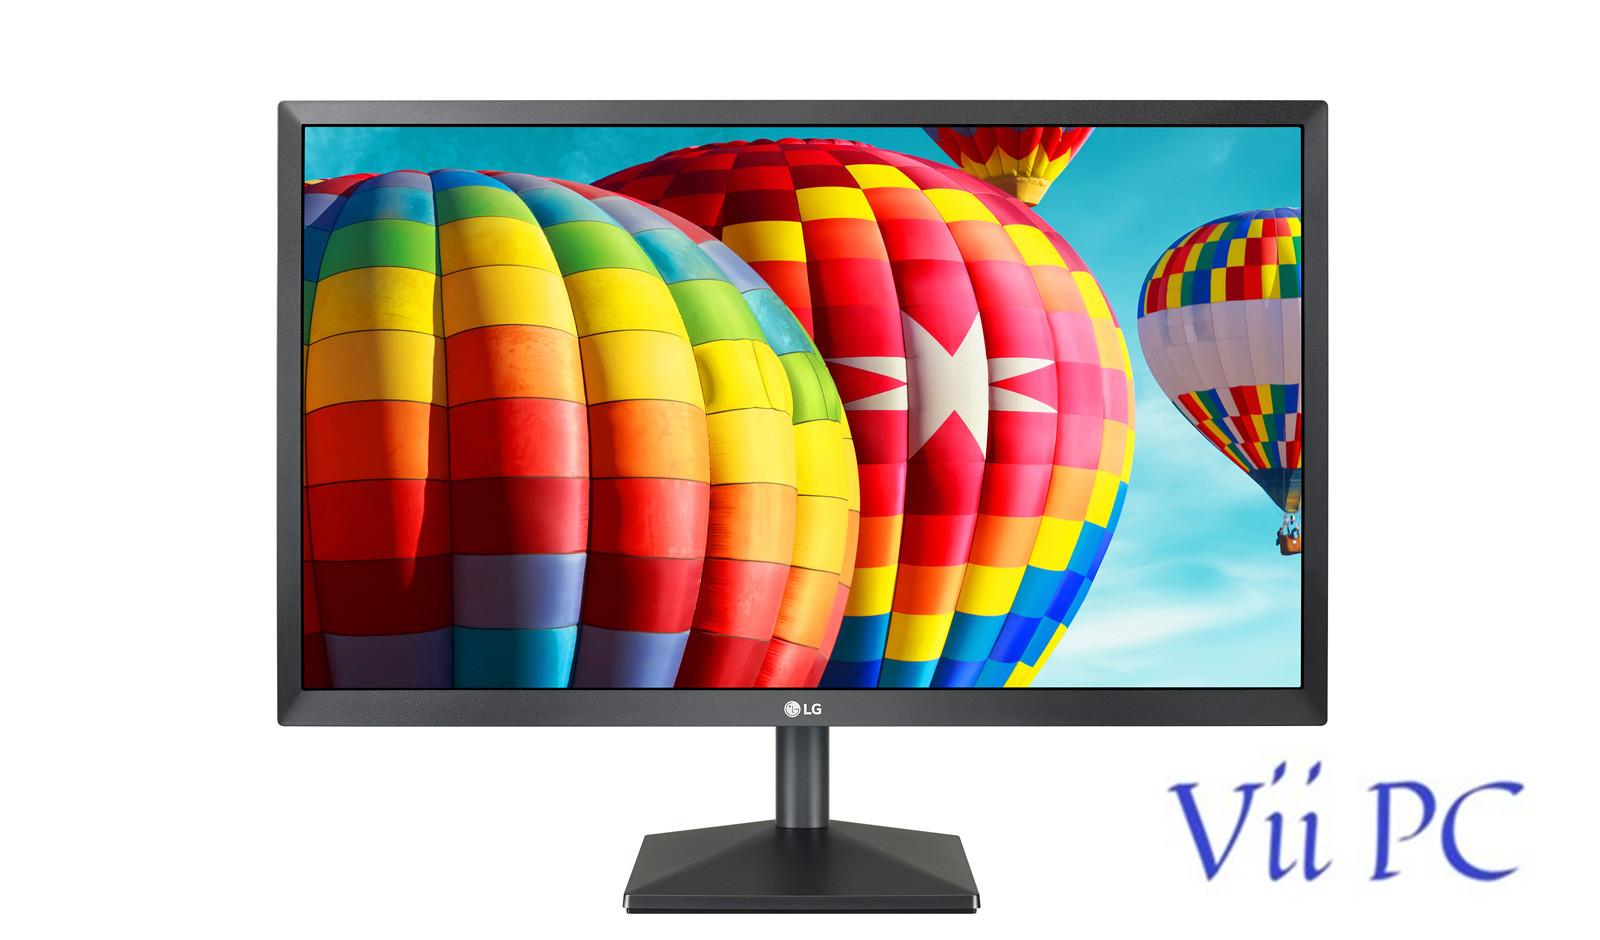 LG 24MK430H-B 24 IN IPS 75Hz AMD FreeSync Wall Mount Supported HDMI Cable Including Gaming Monitor